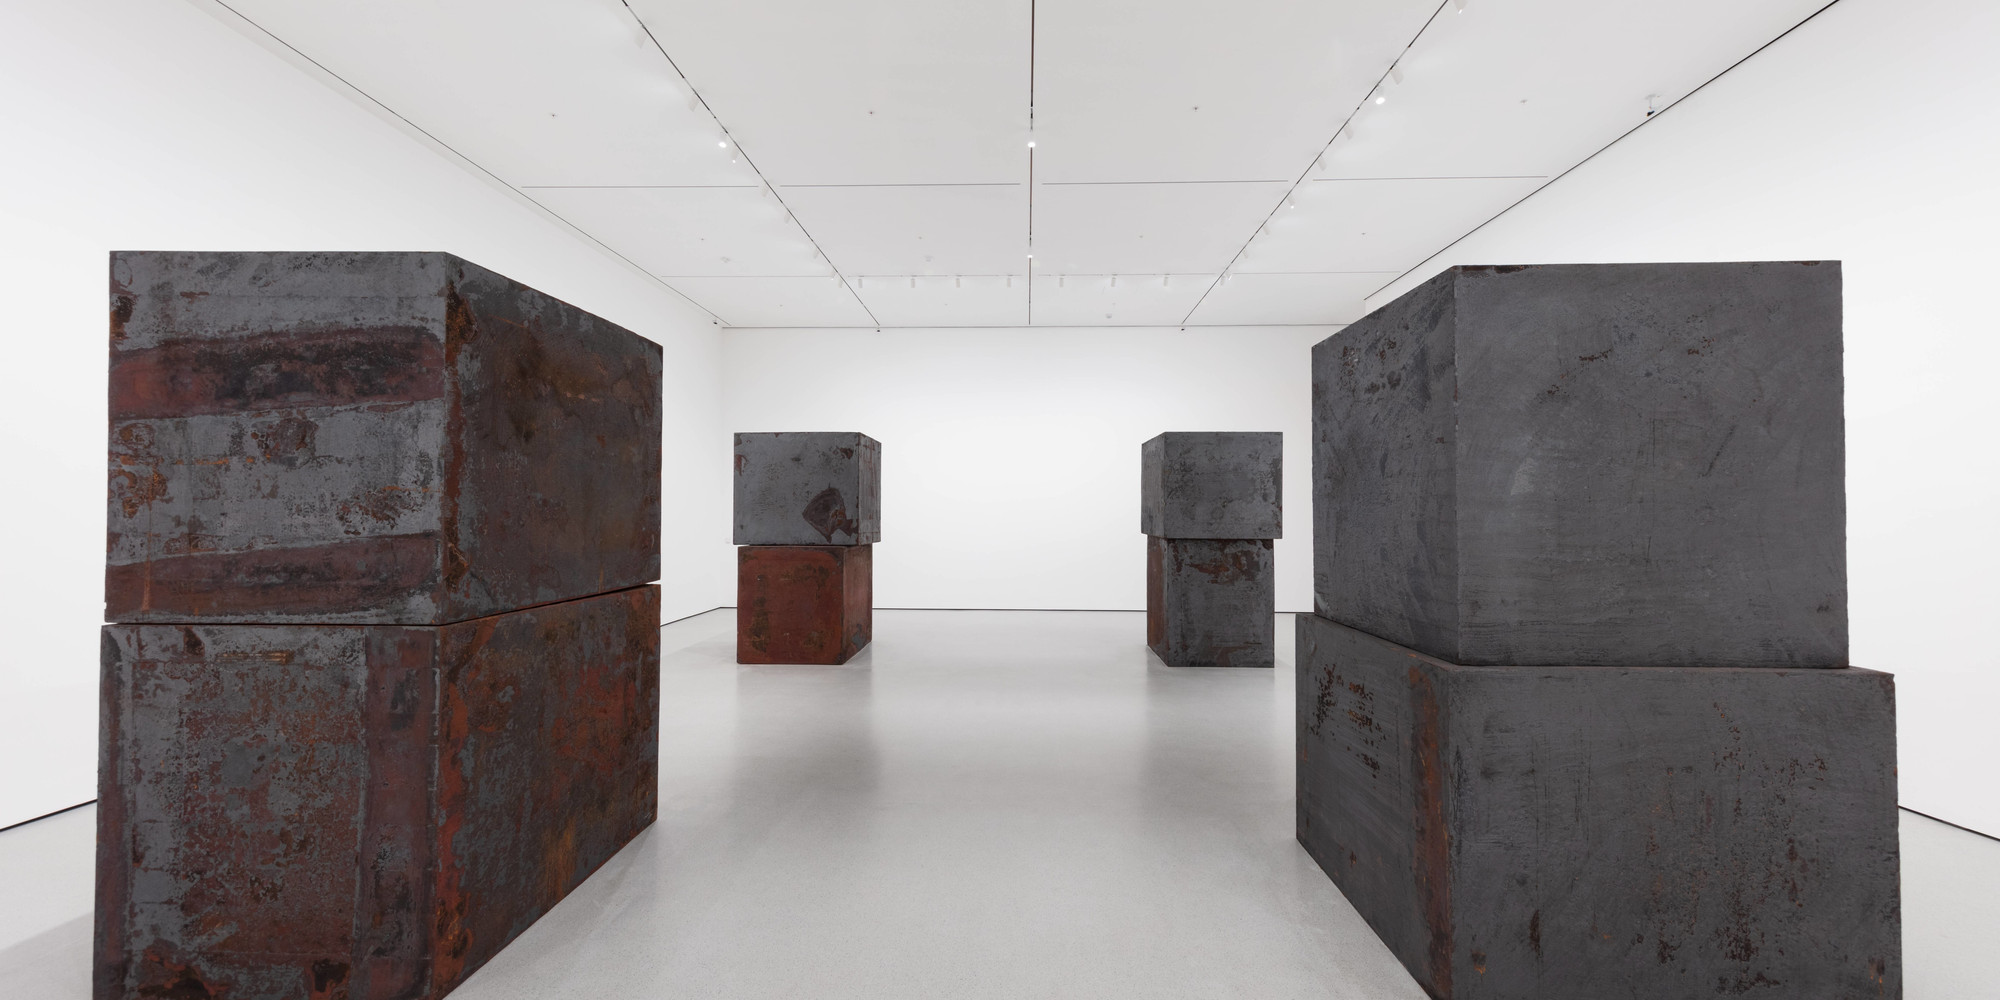 "Richard Serra. Equal. 2015. Forged weatherproof steel, eight blocks, each block 60 × 66 × 72"" (152.4 × 167.6 × 182.9 cm). Gift of Sidney and Harriet Janis (by exchange), Enid A. Haupt Fund, and Gift of William B. Jaffe and Evelyn A. J. Hall (by exchange), The Museum of Modern Art, New York"